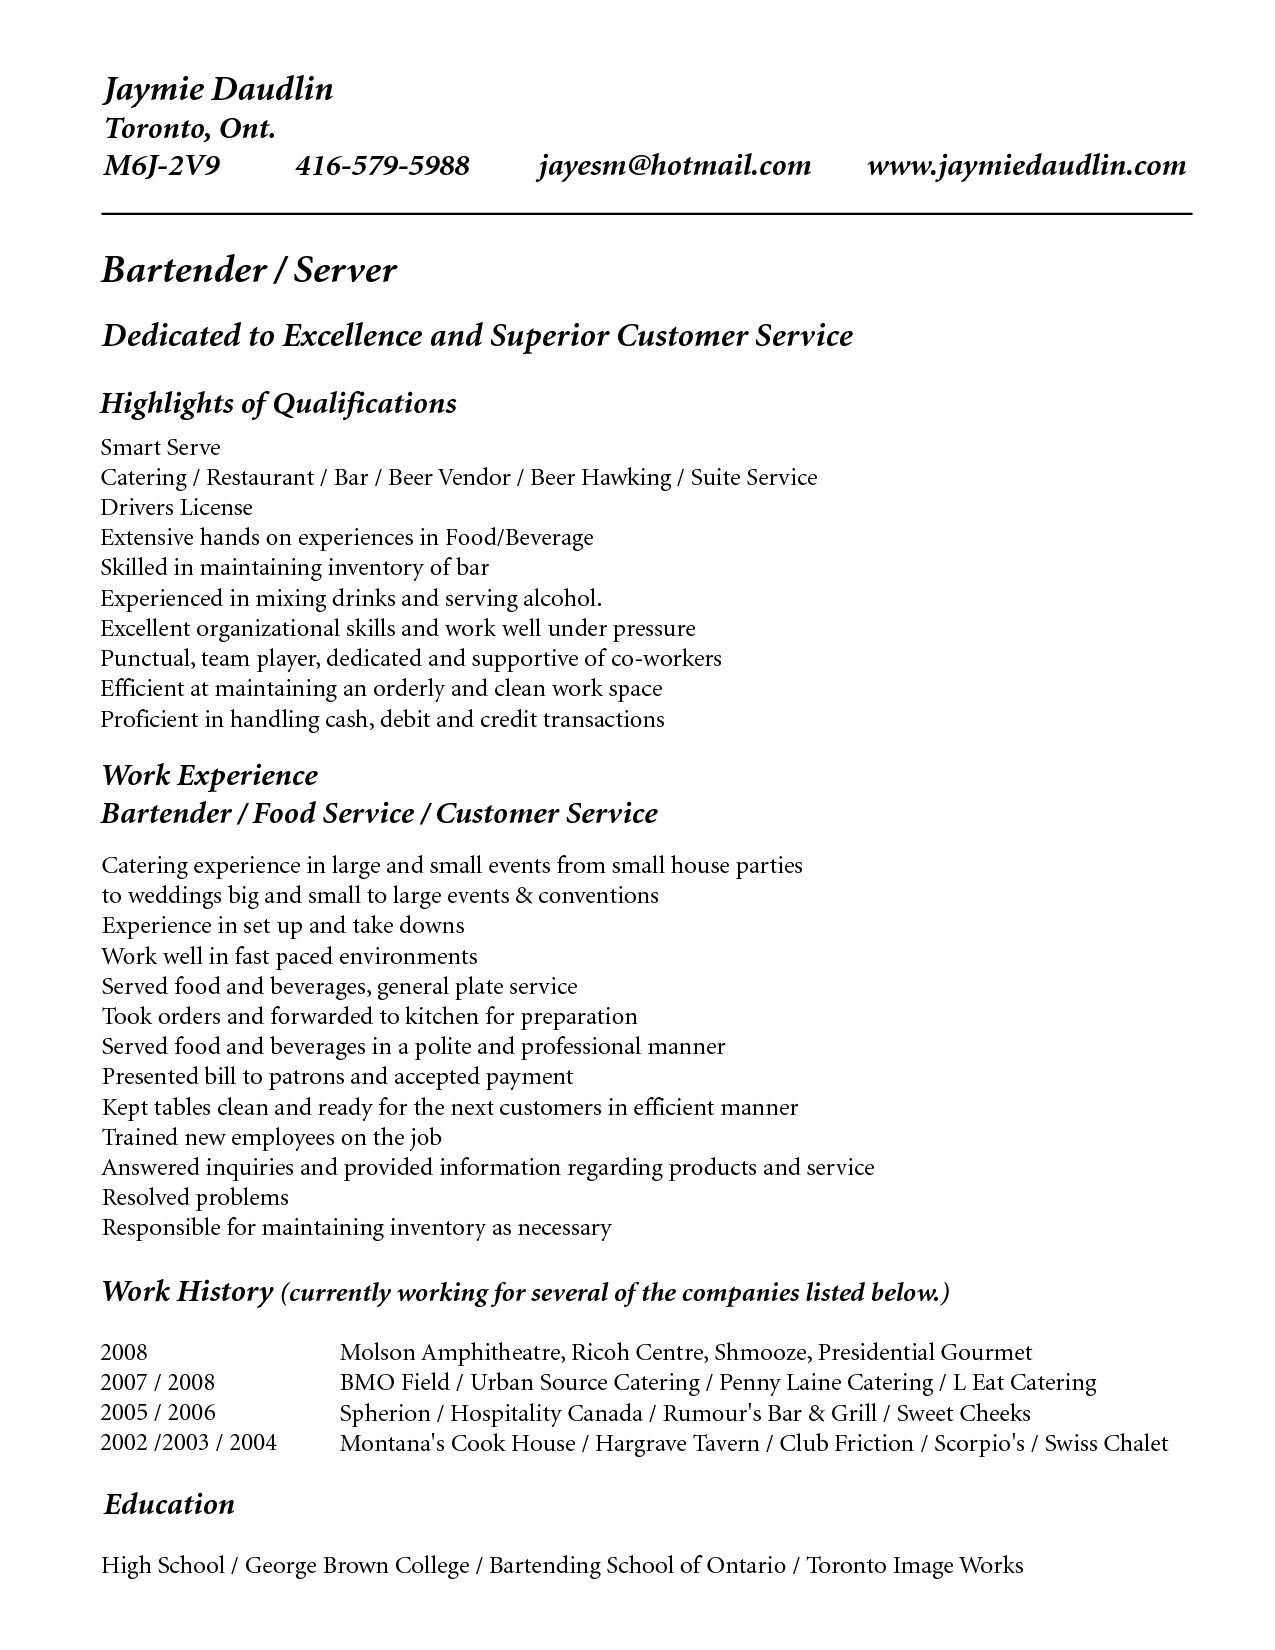 Sample Resume For Bartender Server Under Fontanacountryinn Com